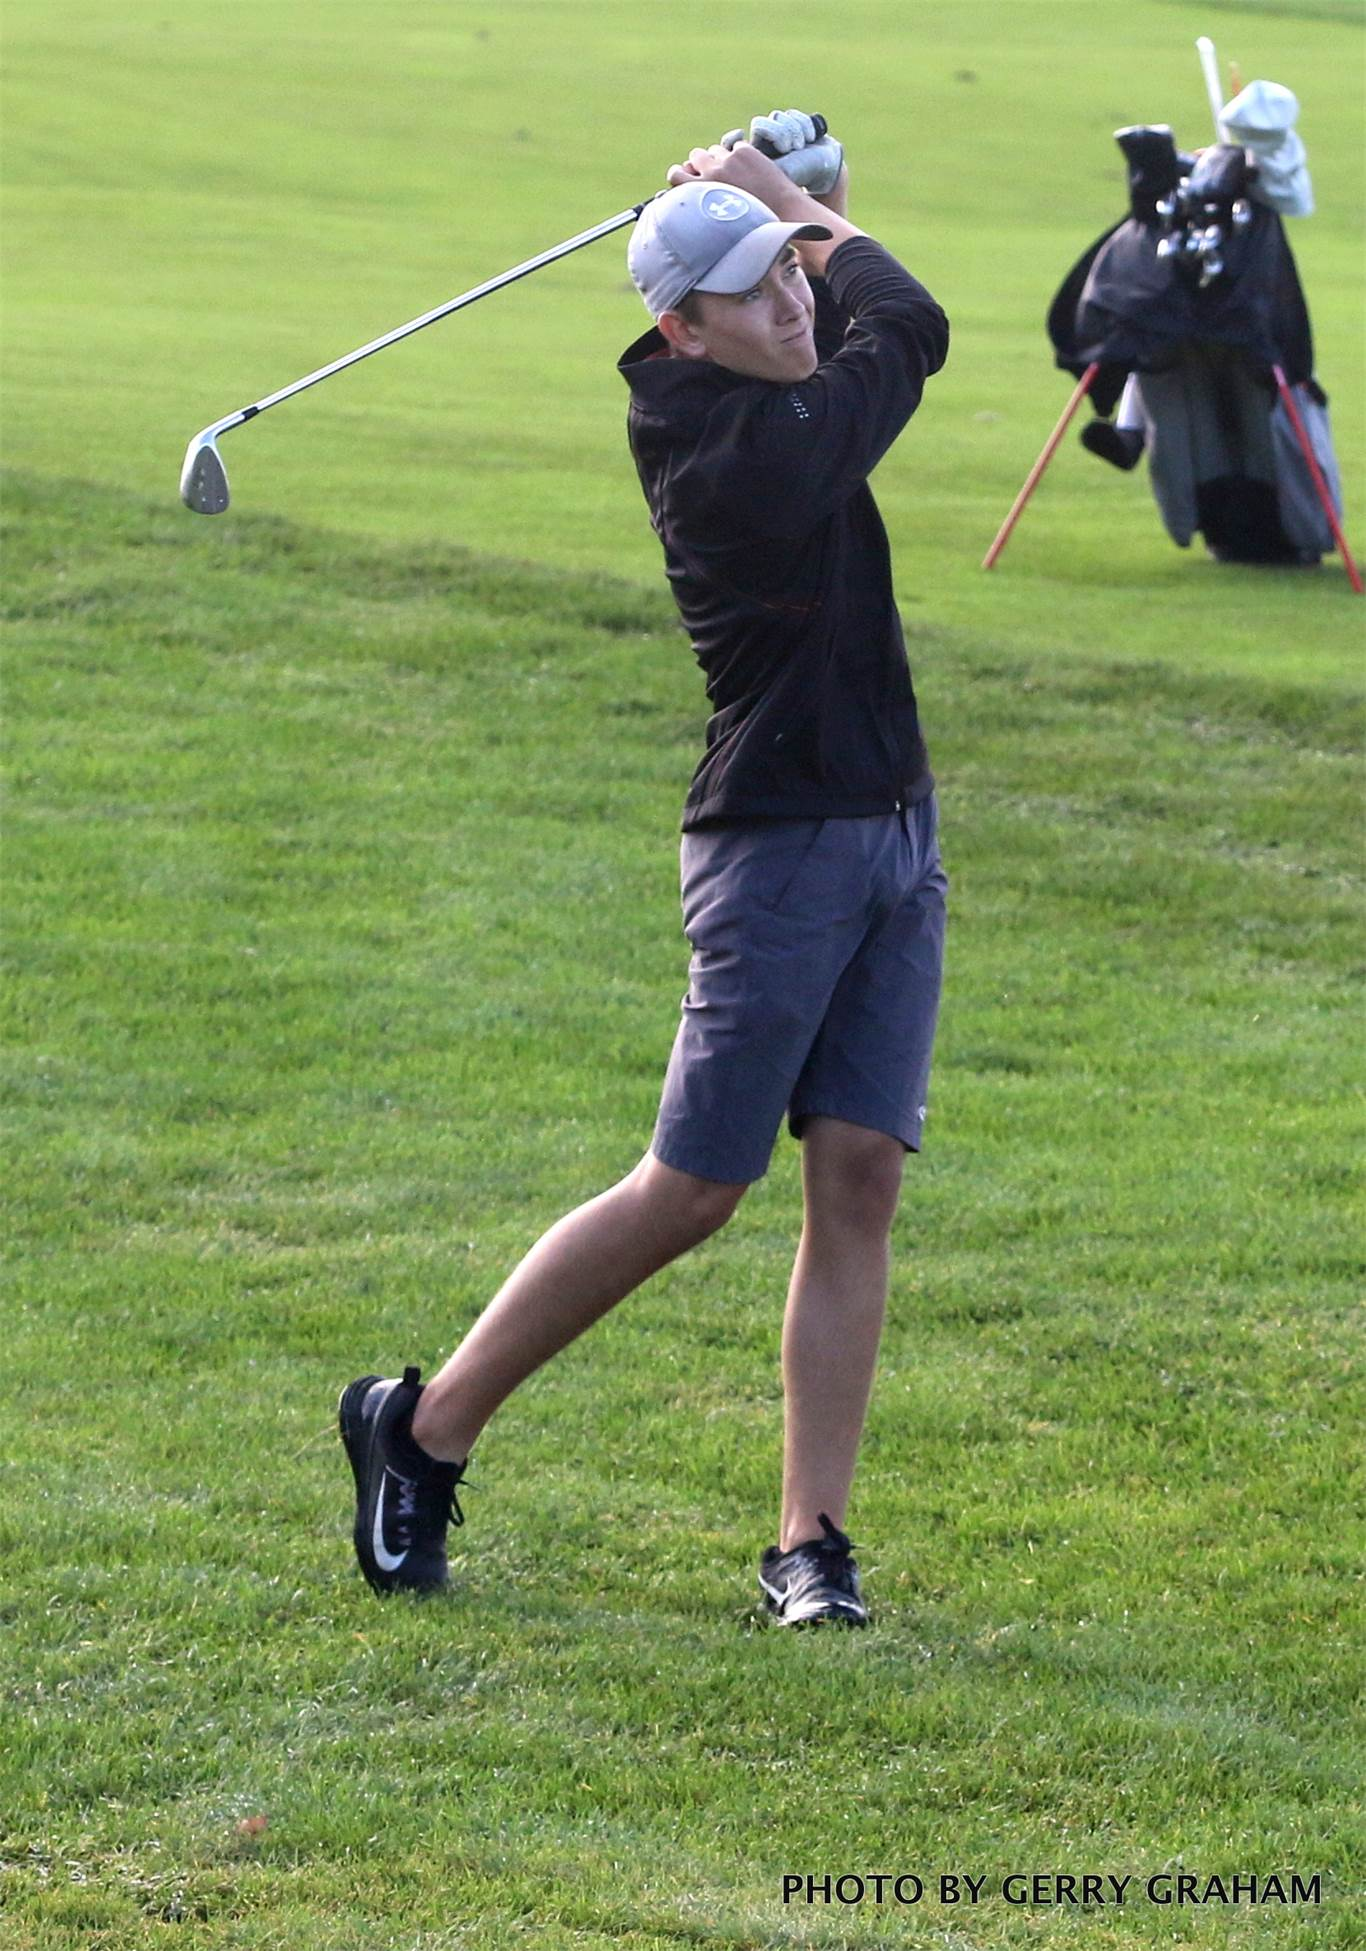 Adam McLean is part of the foursome from Bishop Tonnos heading to the OFSAA boys' golf championship in Whitby. Photo by Gerry Graham.